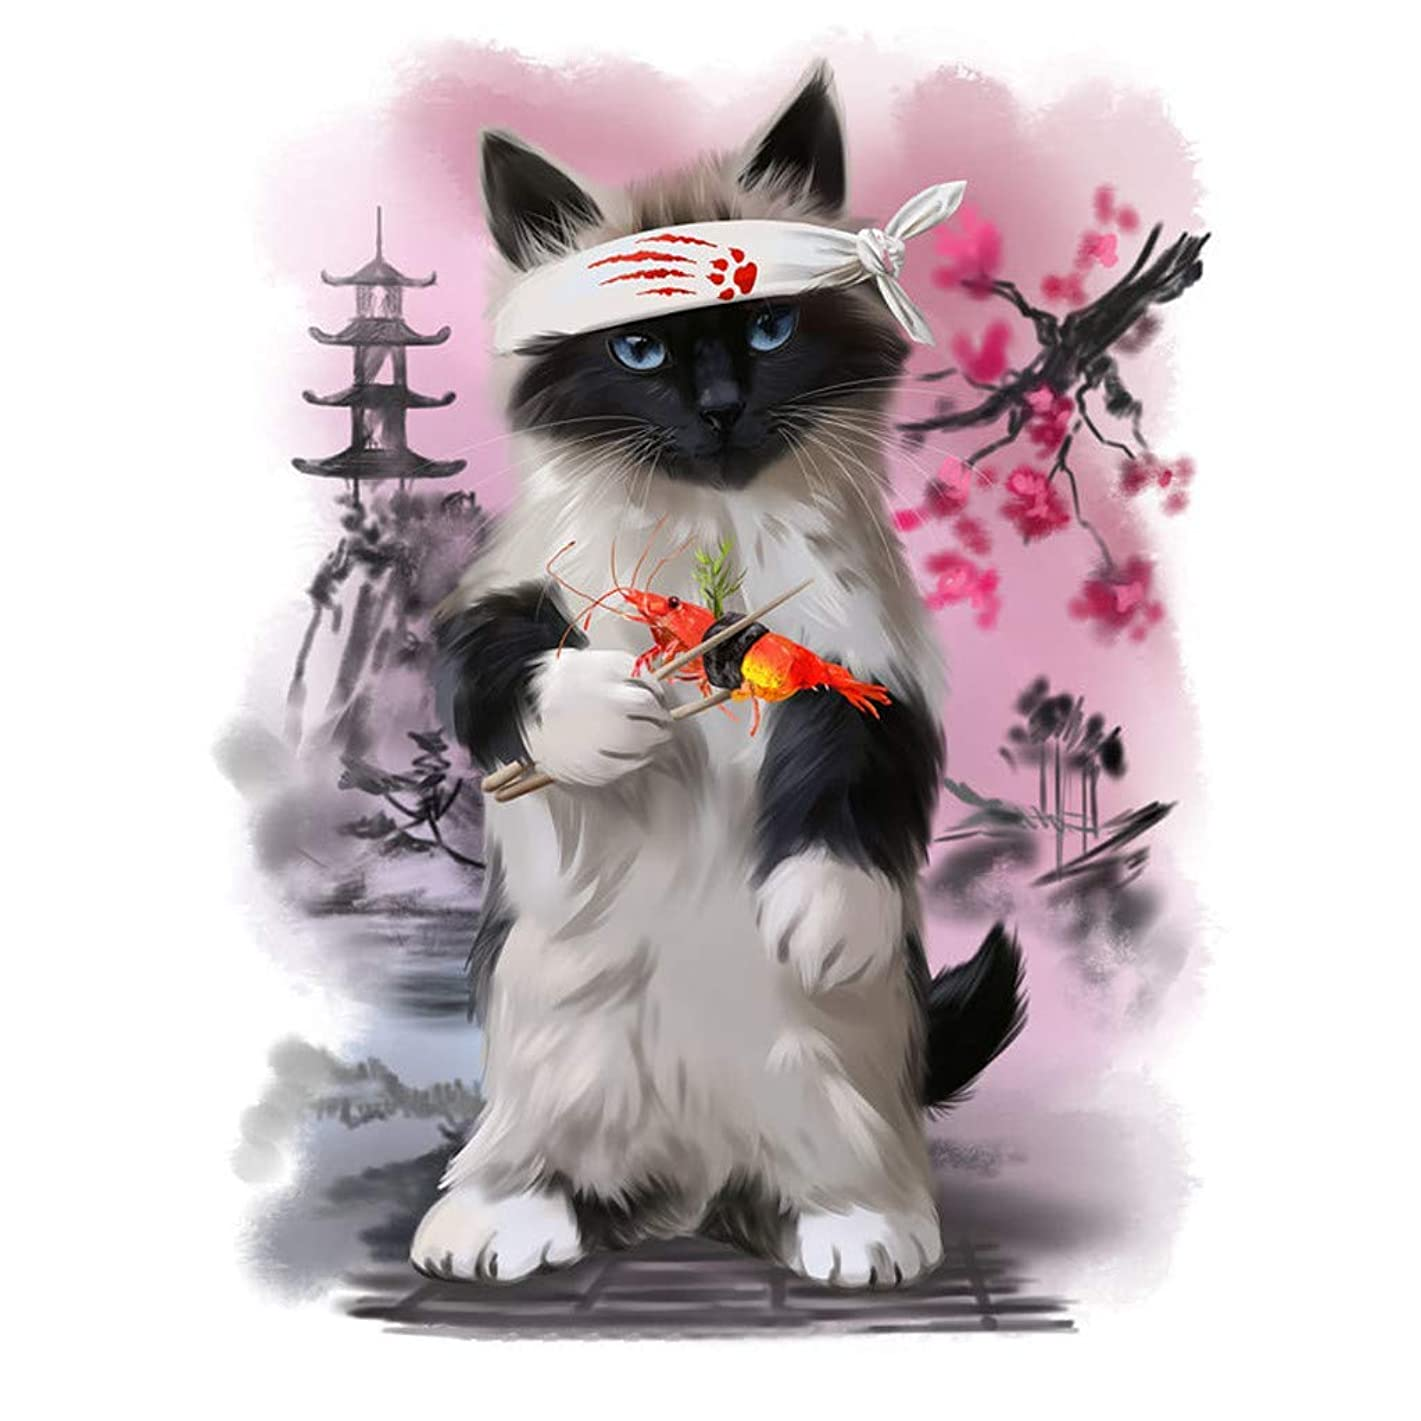 BoutiQ 2019 Diamond Painting by Number Kits 5D Crystal Rhinestone Embroidery Pictures Arts Craft for Home Decor Wall Decorative Drills Cross Stitch DIY Canvas Tools (Kungfu Cat, 11.8x15.7in)